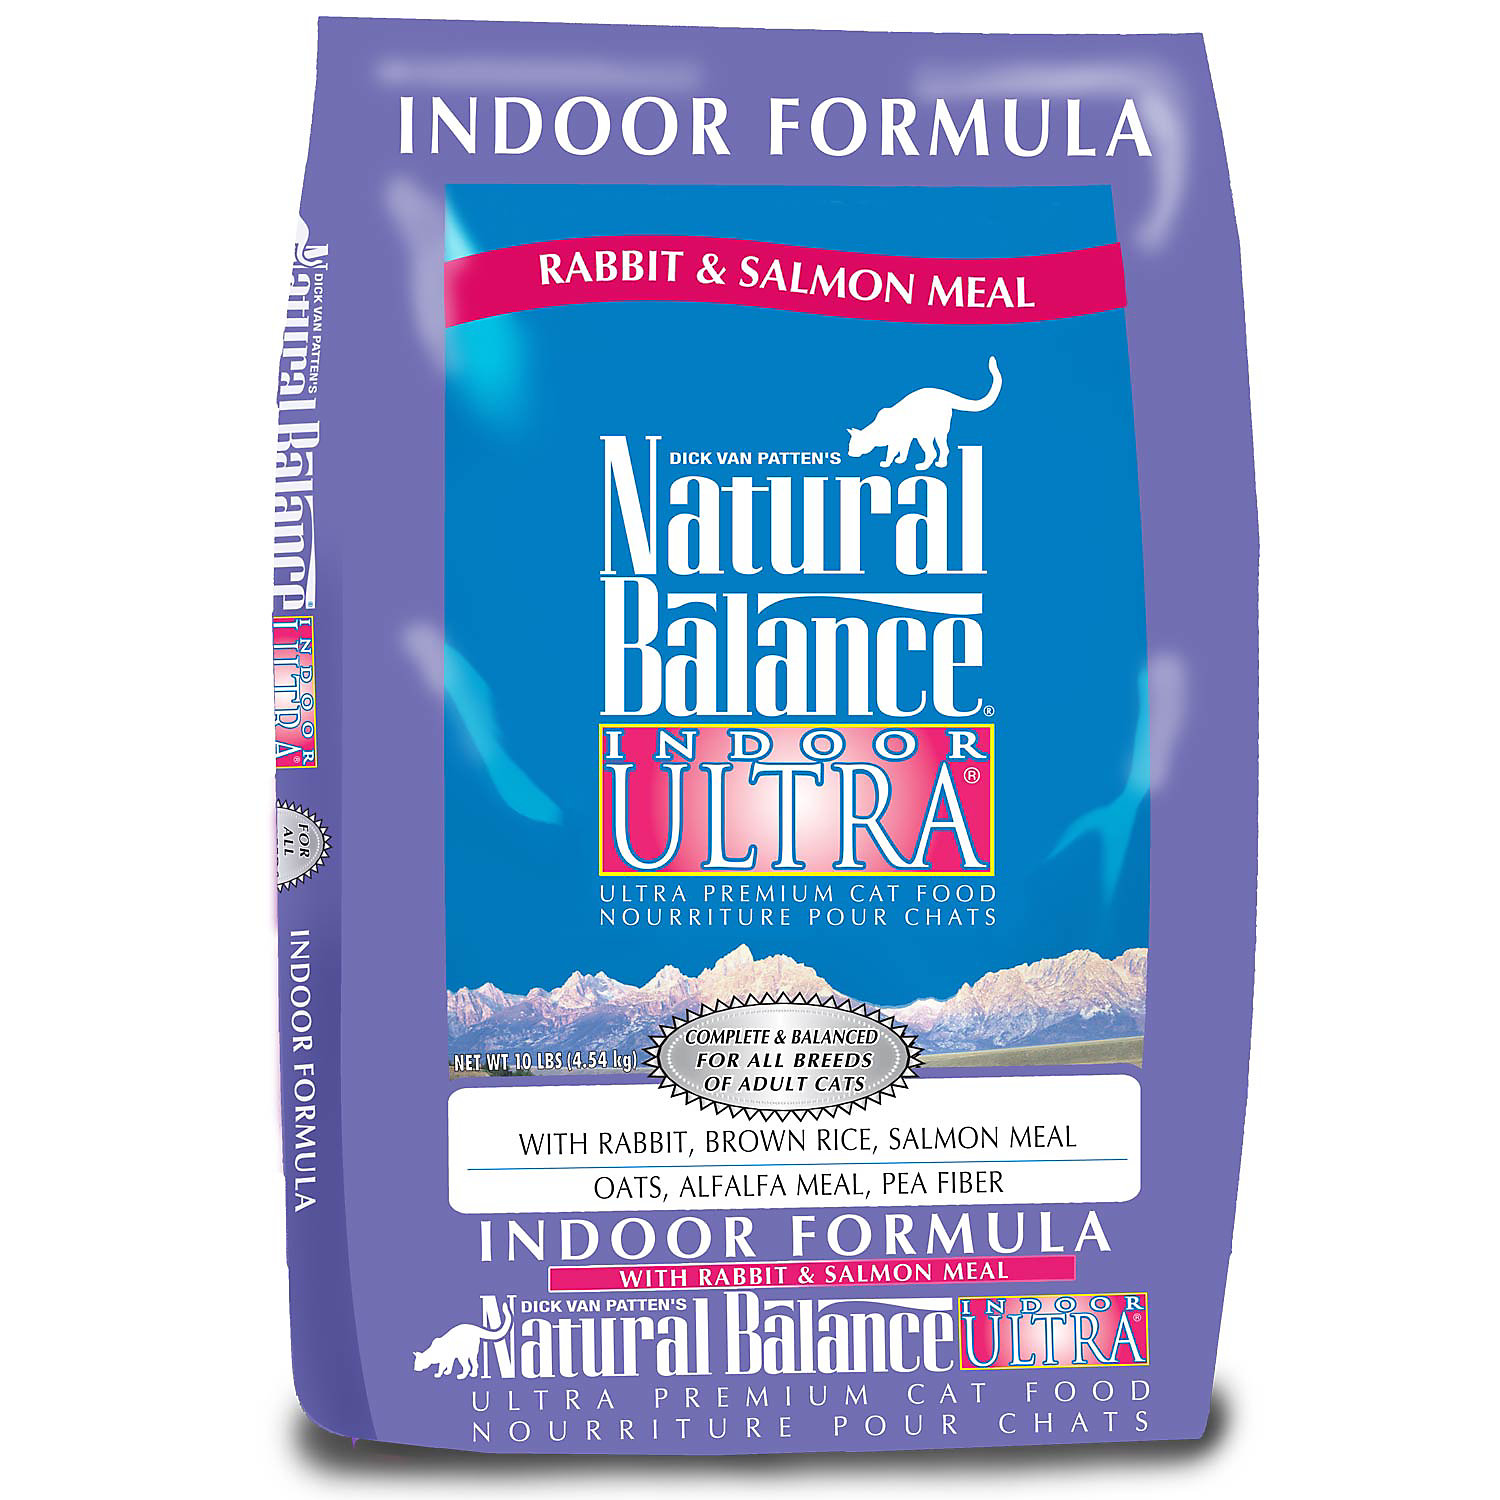 Natural Balance Indoor Ultra Rabbit & Salmon Meal Formula Dry Cat Food, 5-lb